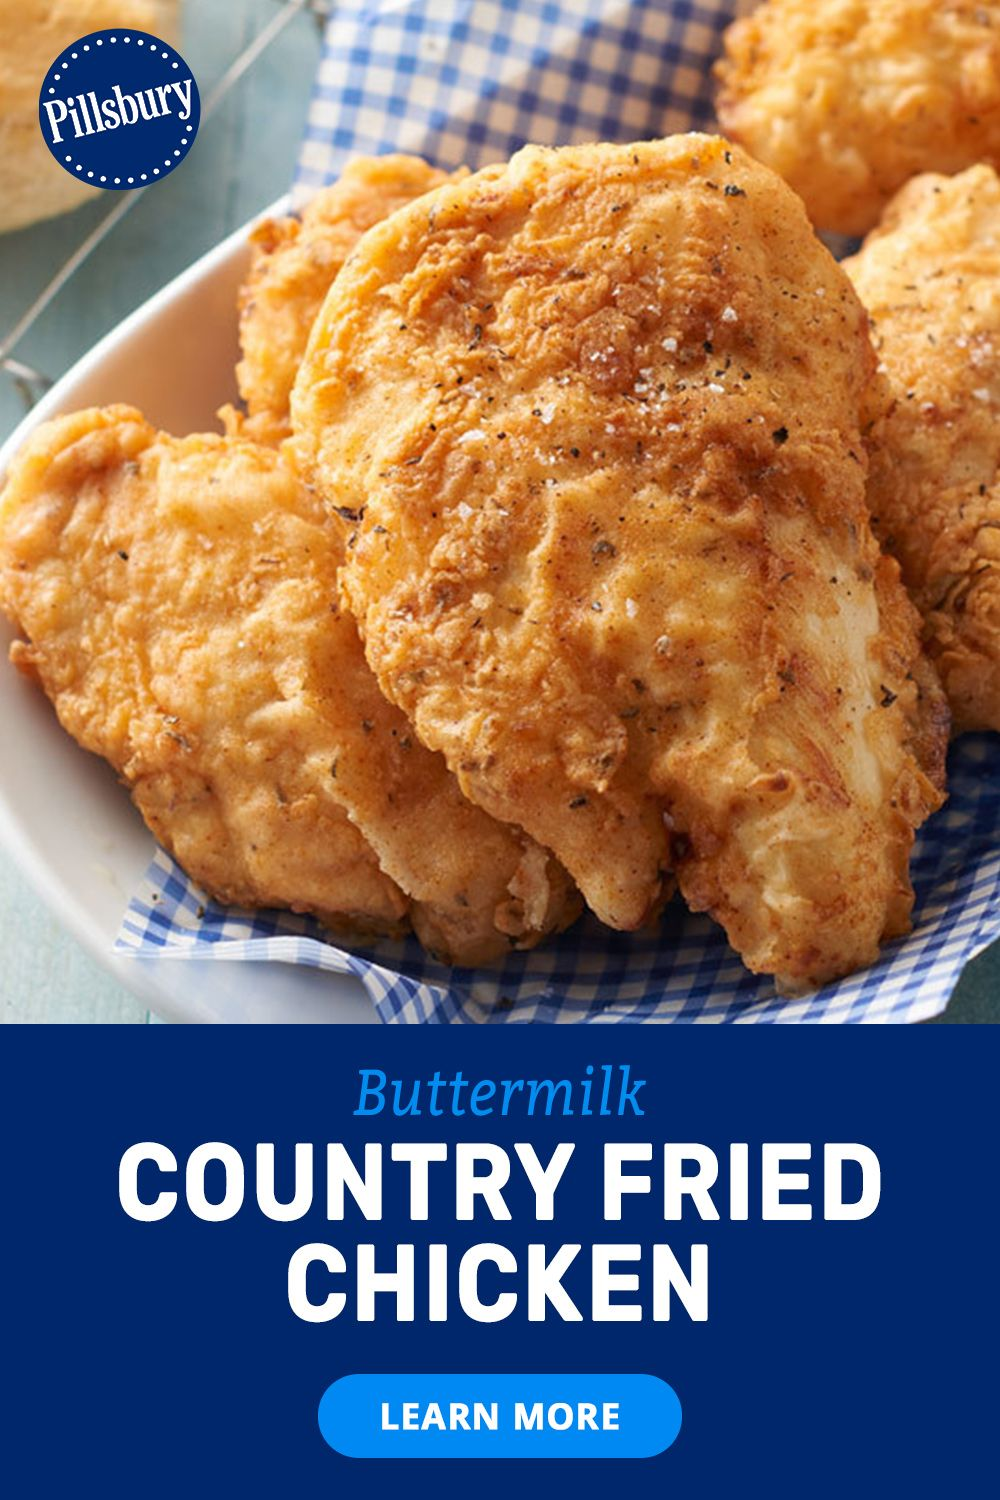 Buttermilk Country Fried Chicken Recipe In 2020 Country Fried Chicken Fried Chicken Country Fried